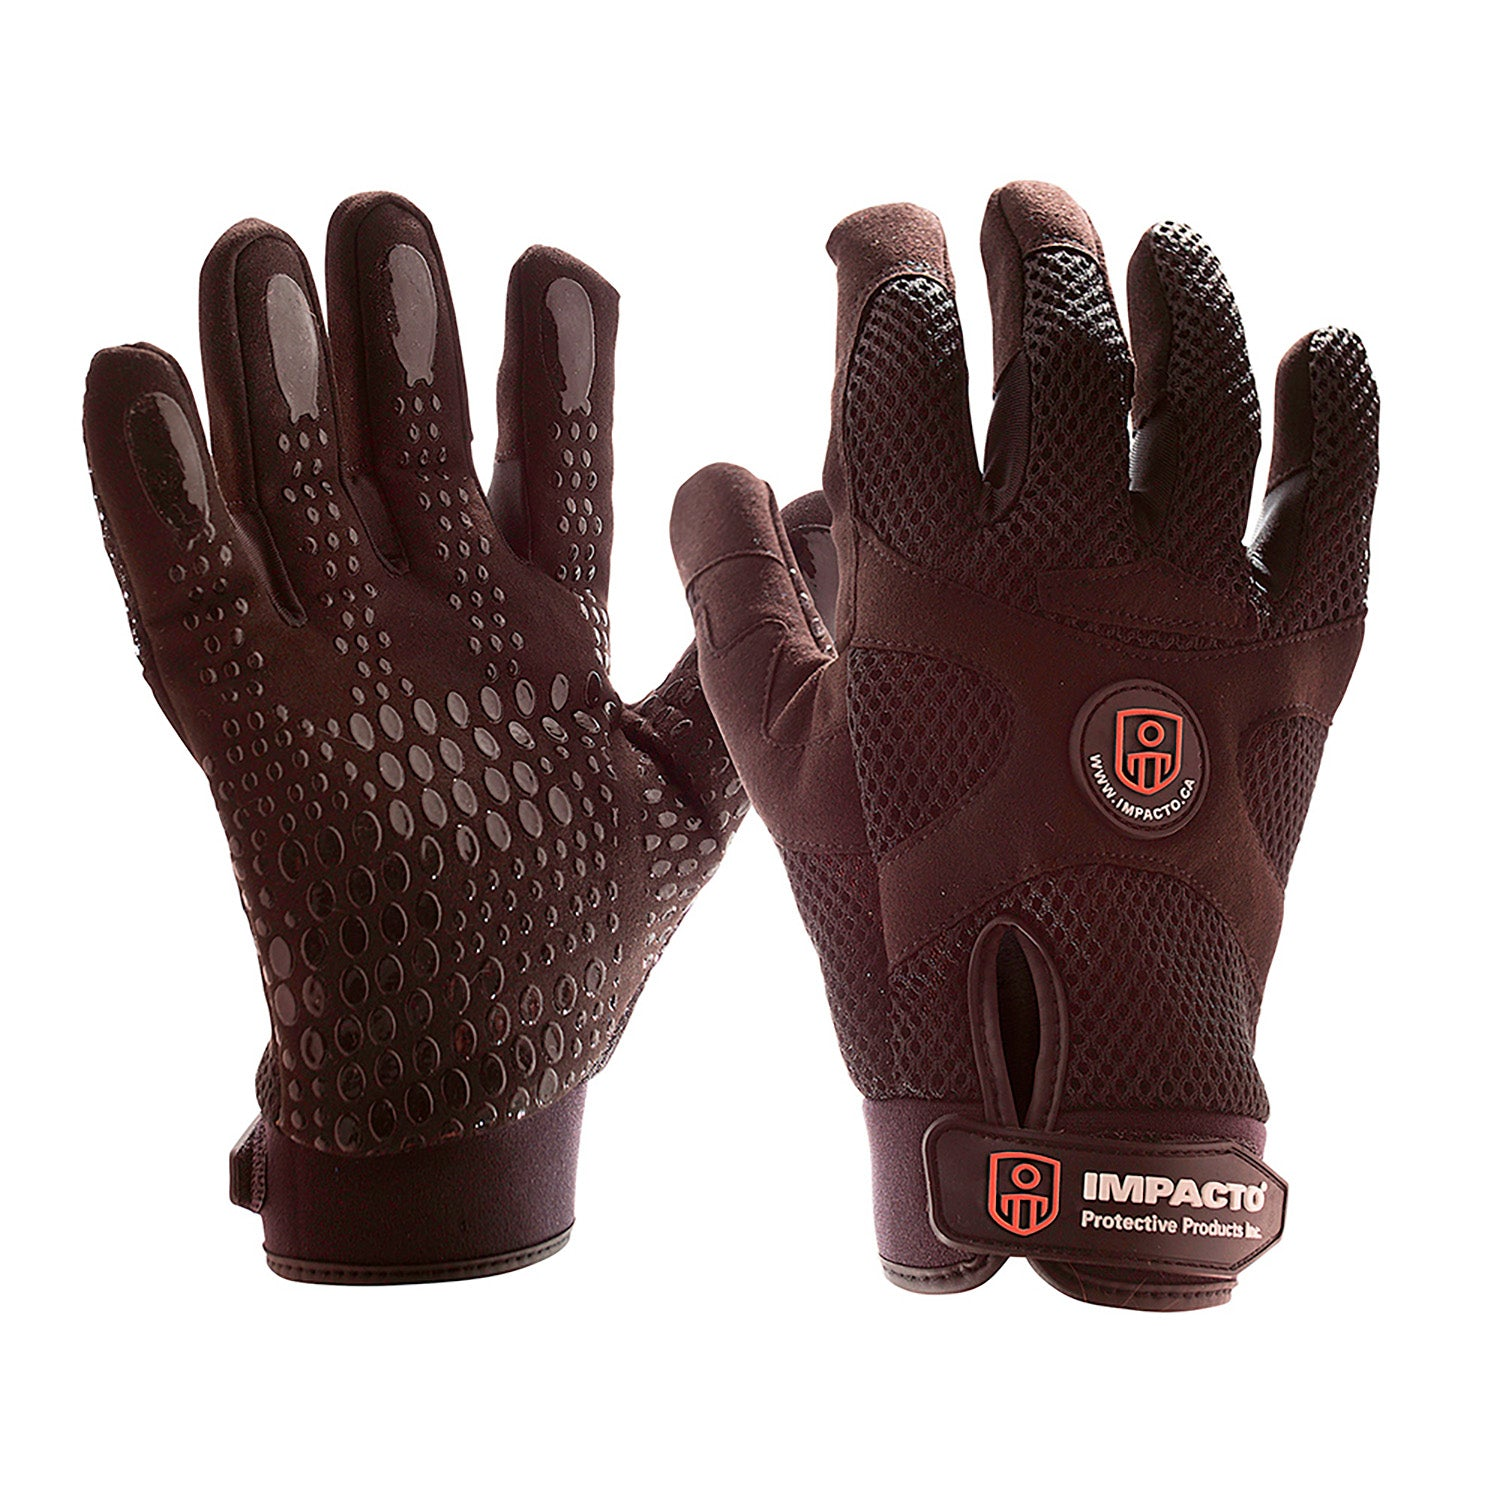 The BG408 Anti-Vibration Mechanic's Glove is designed to offer the best comfort, protection, and dexterity. These gloves utilize patented, Air Glove technology in the durable bubble glove bladder in the palms, fingers, and thumbs to provide superior anti-vibration protection